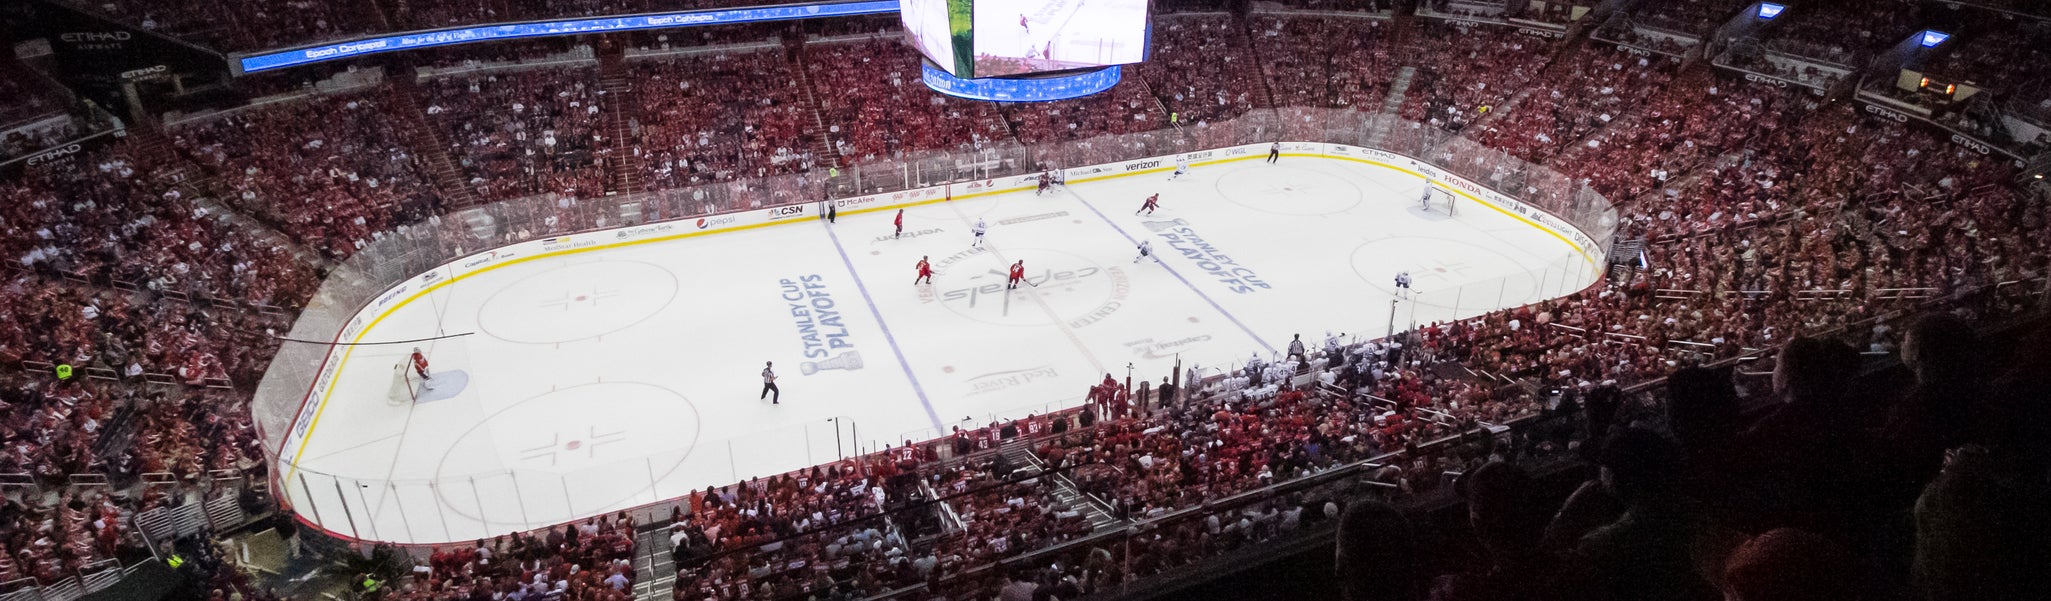 Seat view from Mezzanine Corner 432 at Capital One Arena